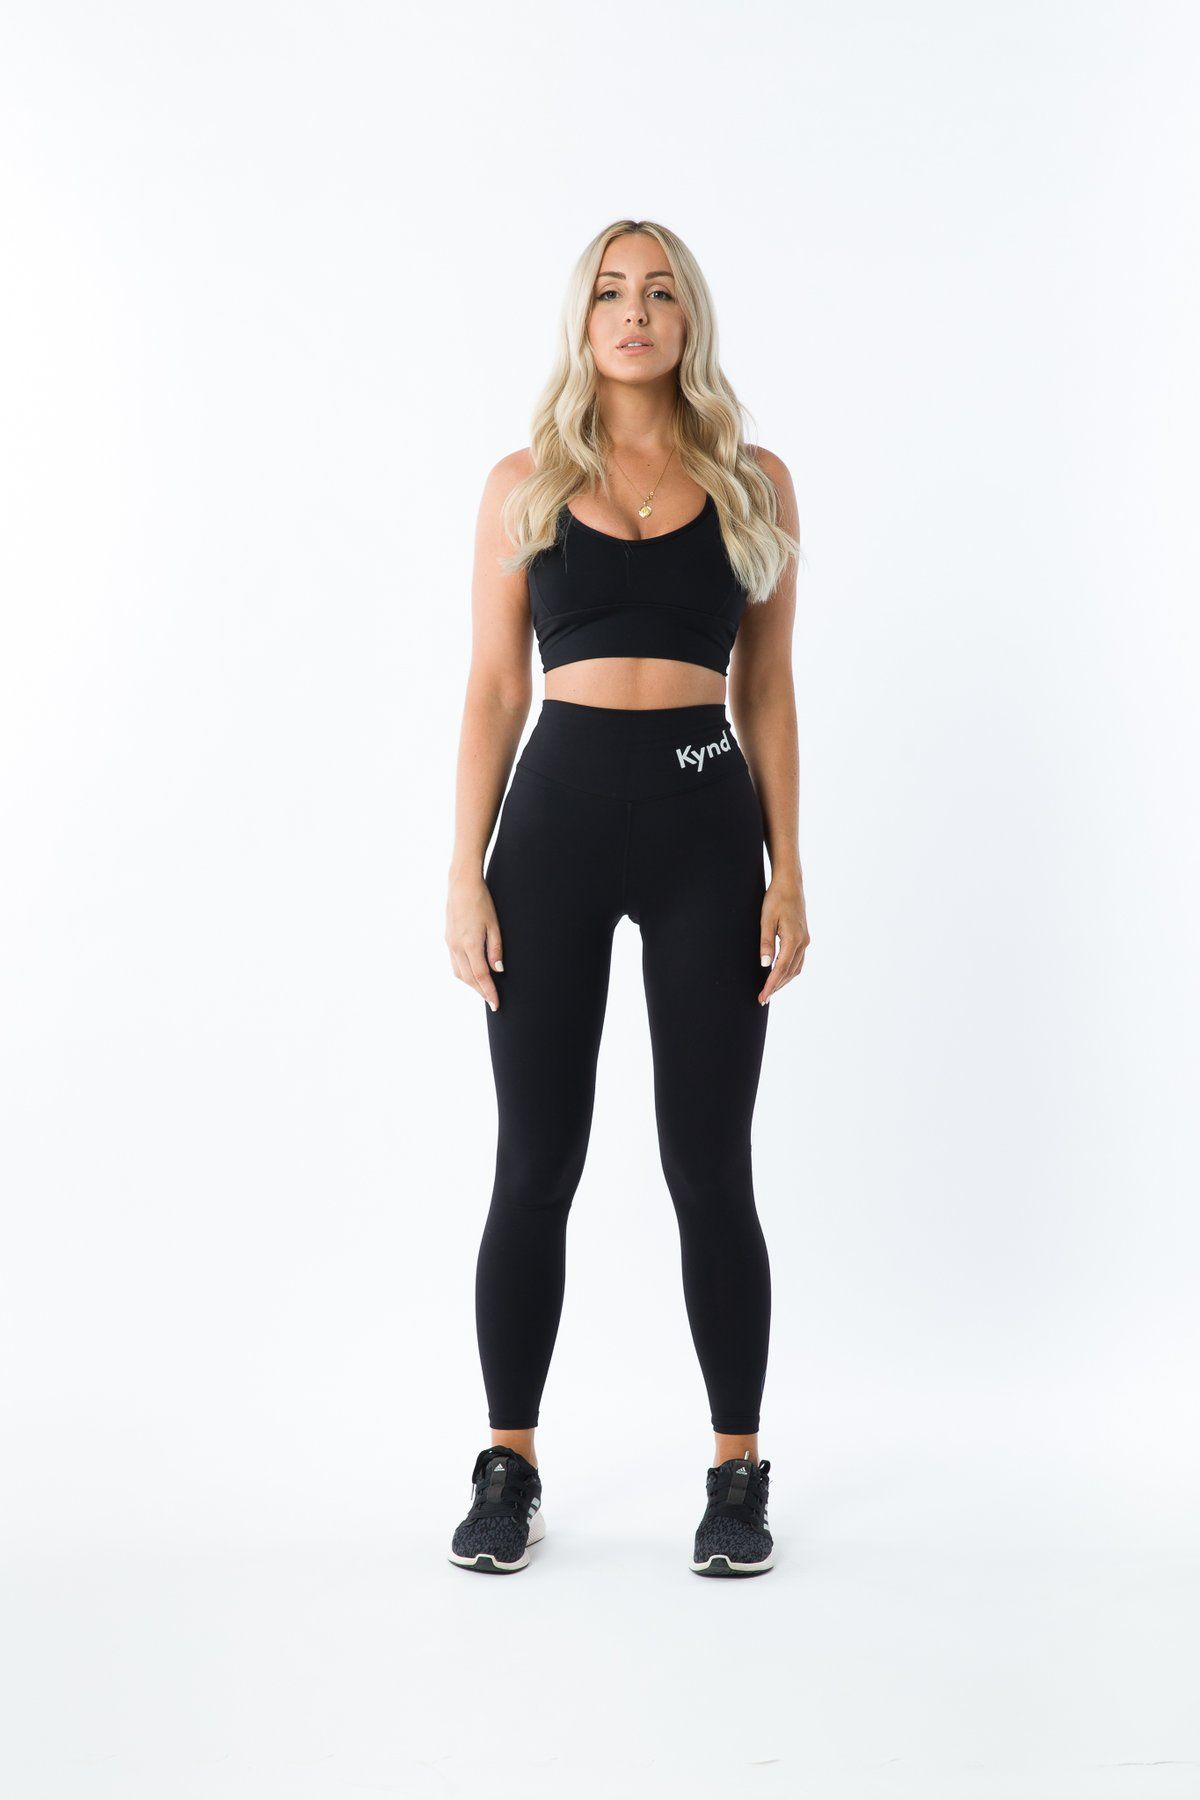 Kynd 01 Leggings - Black